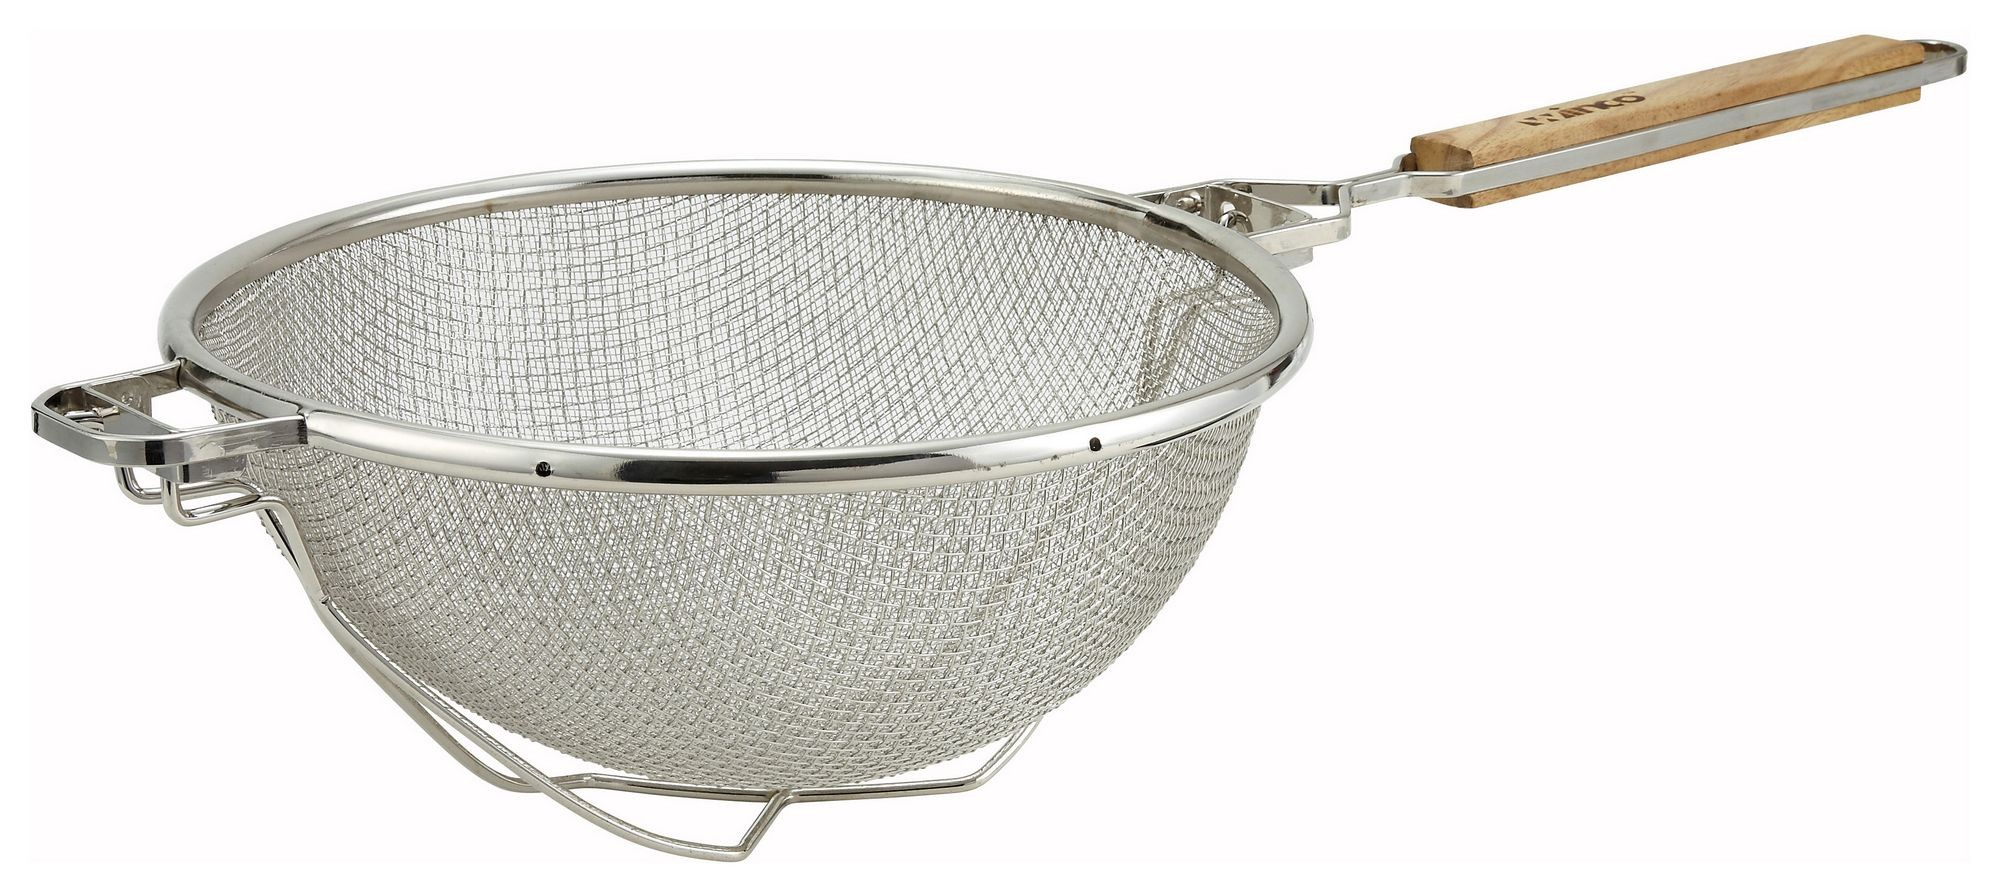 Double Mesh Strainer With Reinforced Bowl - 10-1/2